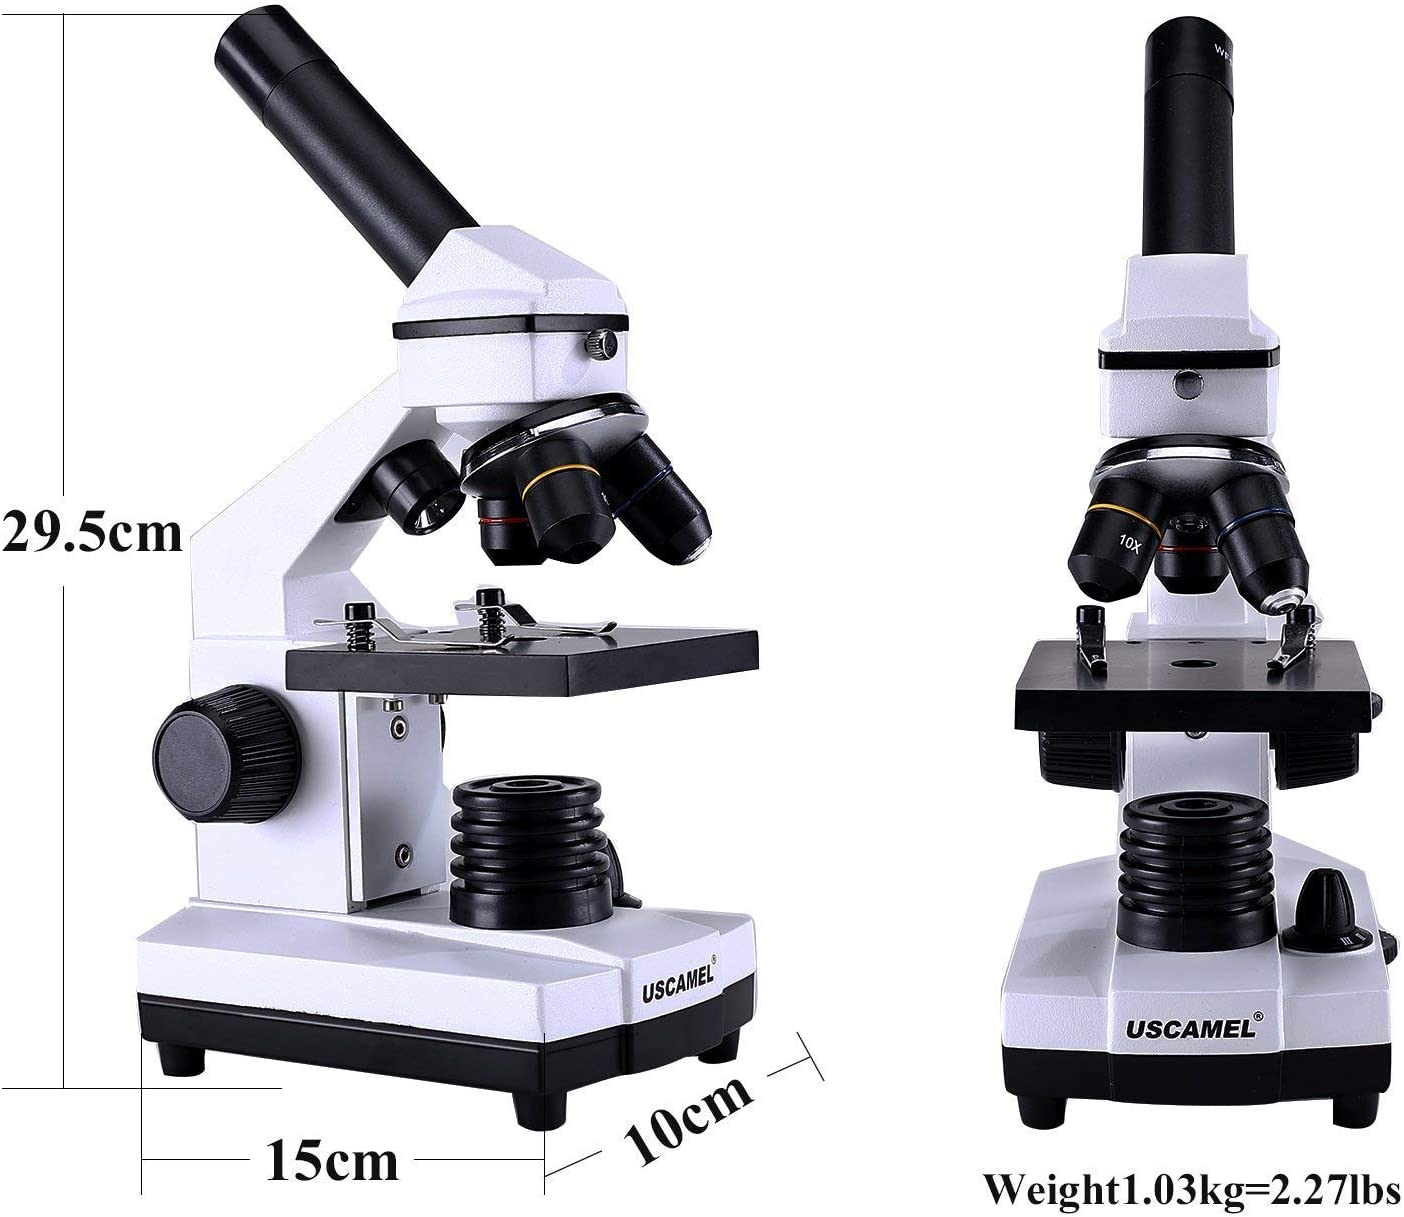 USCAMEL Microscope for Students Biological Slices Included 40-400X All-Optic Glass High-Power for Kids and Children Scientific Research